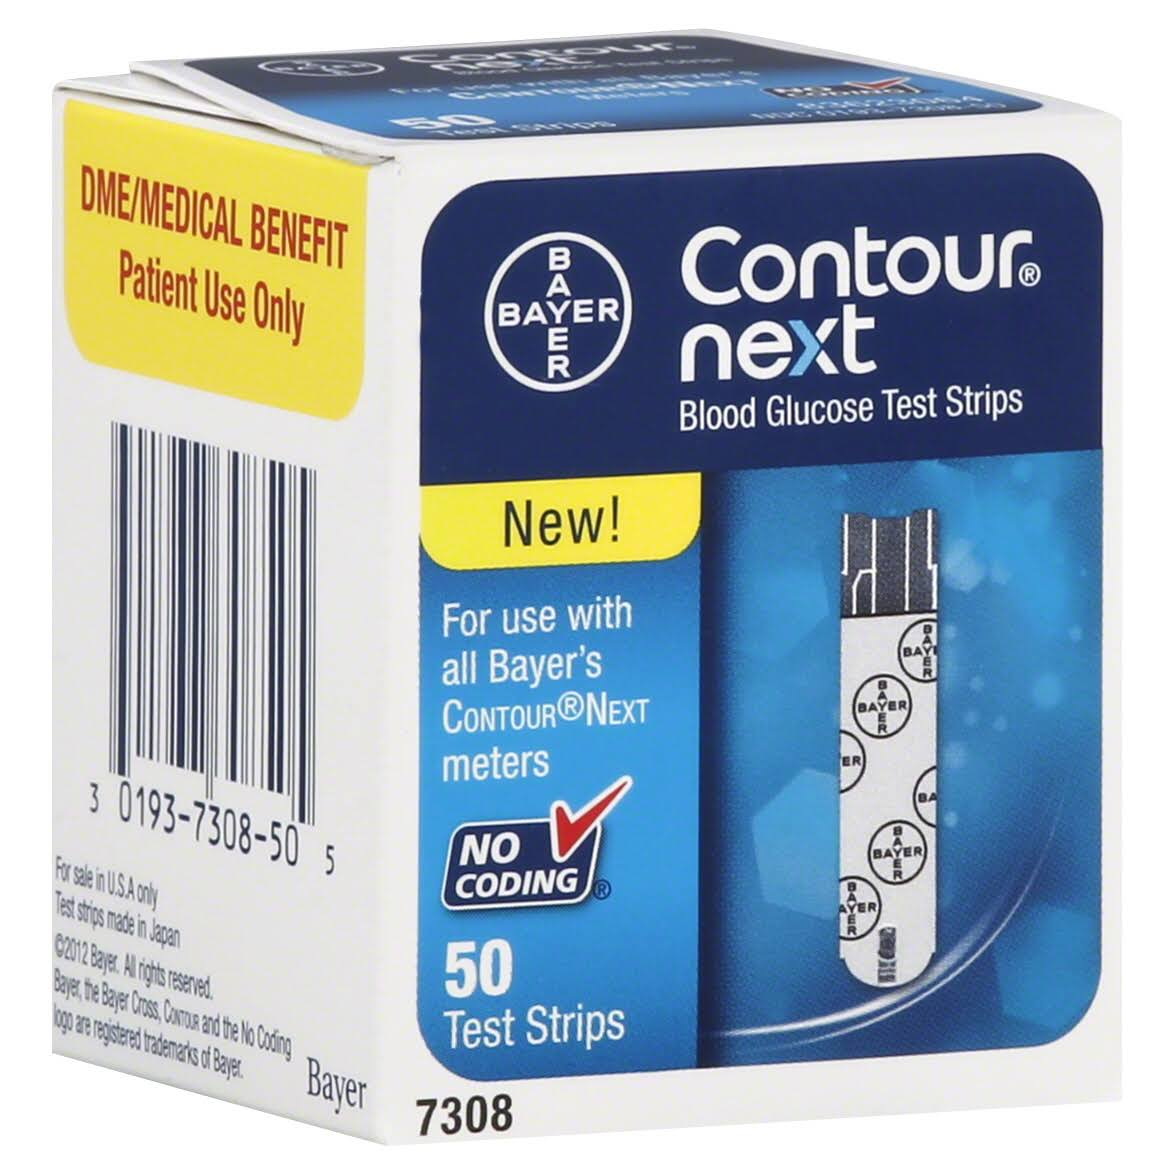 Bayer Contour Next Blood Glucose Test Strips - 50 Test Strips